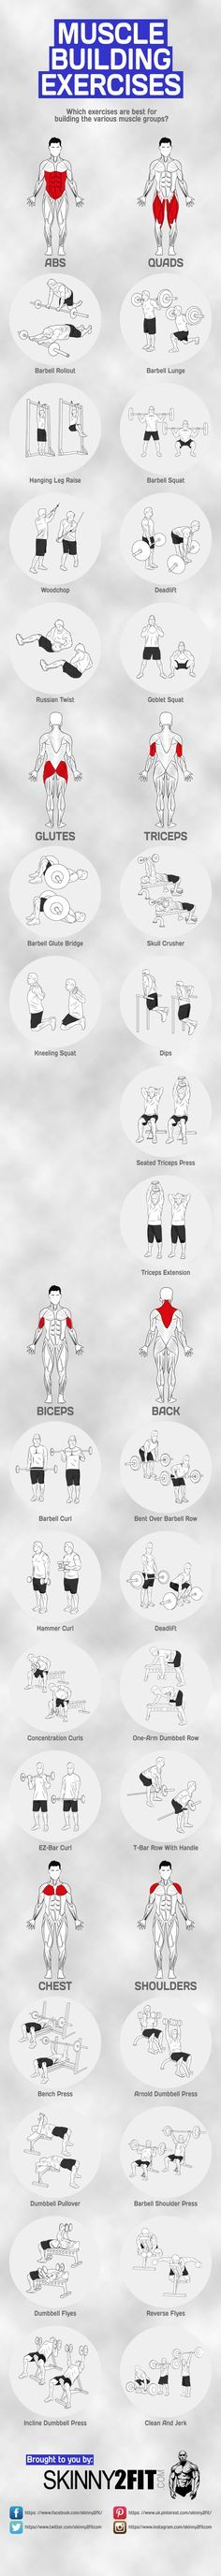 What are the top muscle building exercises for each muscle group? This graphic will show you the best exercises for serious strength and muscle gains.